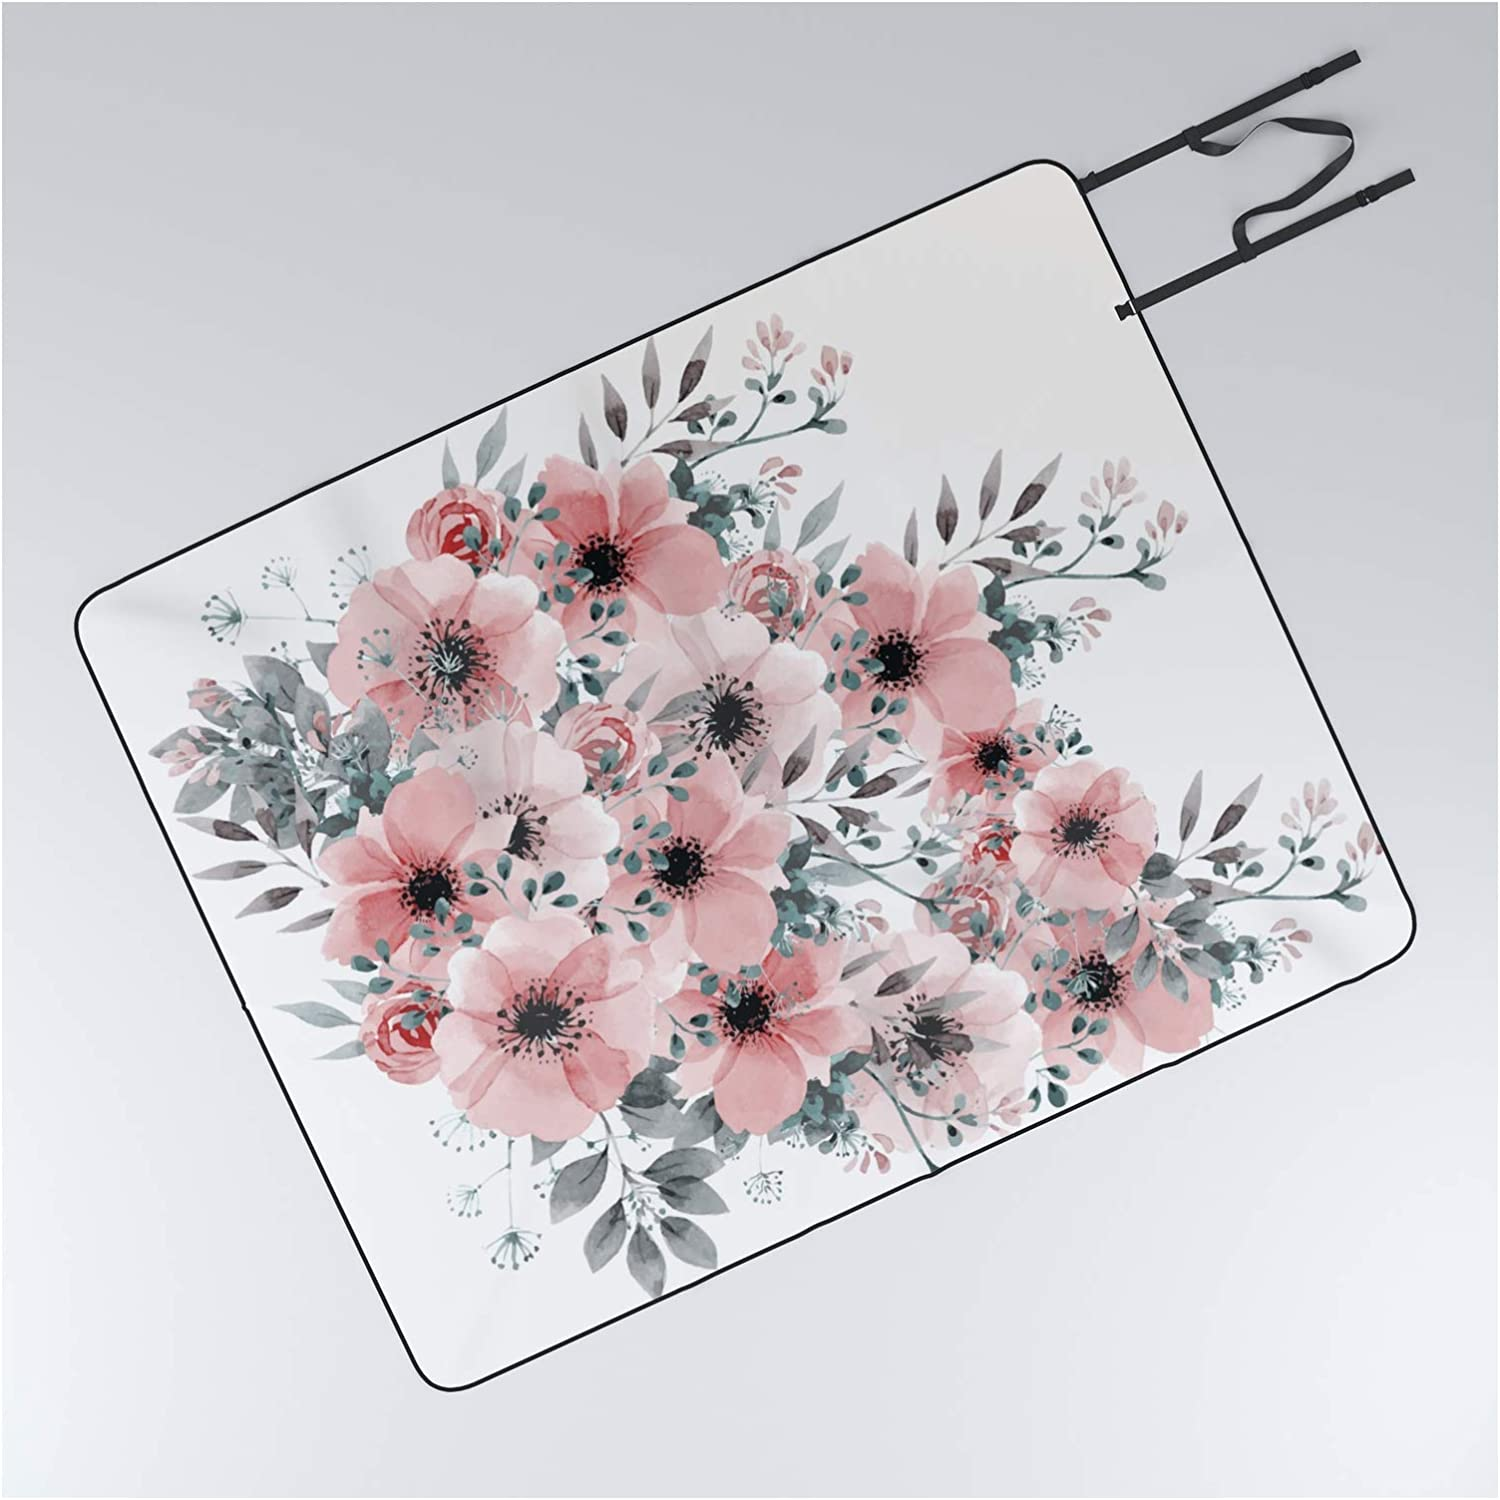 Society6 Max Ultra-Cheap Deals 72% OFF Watercolor Flower Blush Pink Prints b Gray Floral and